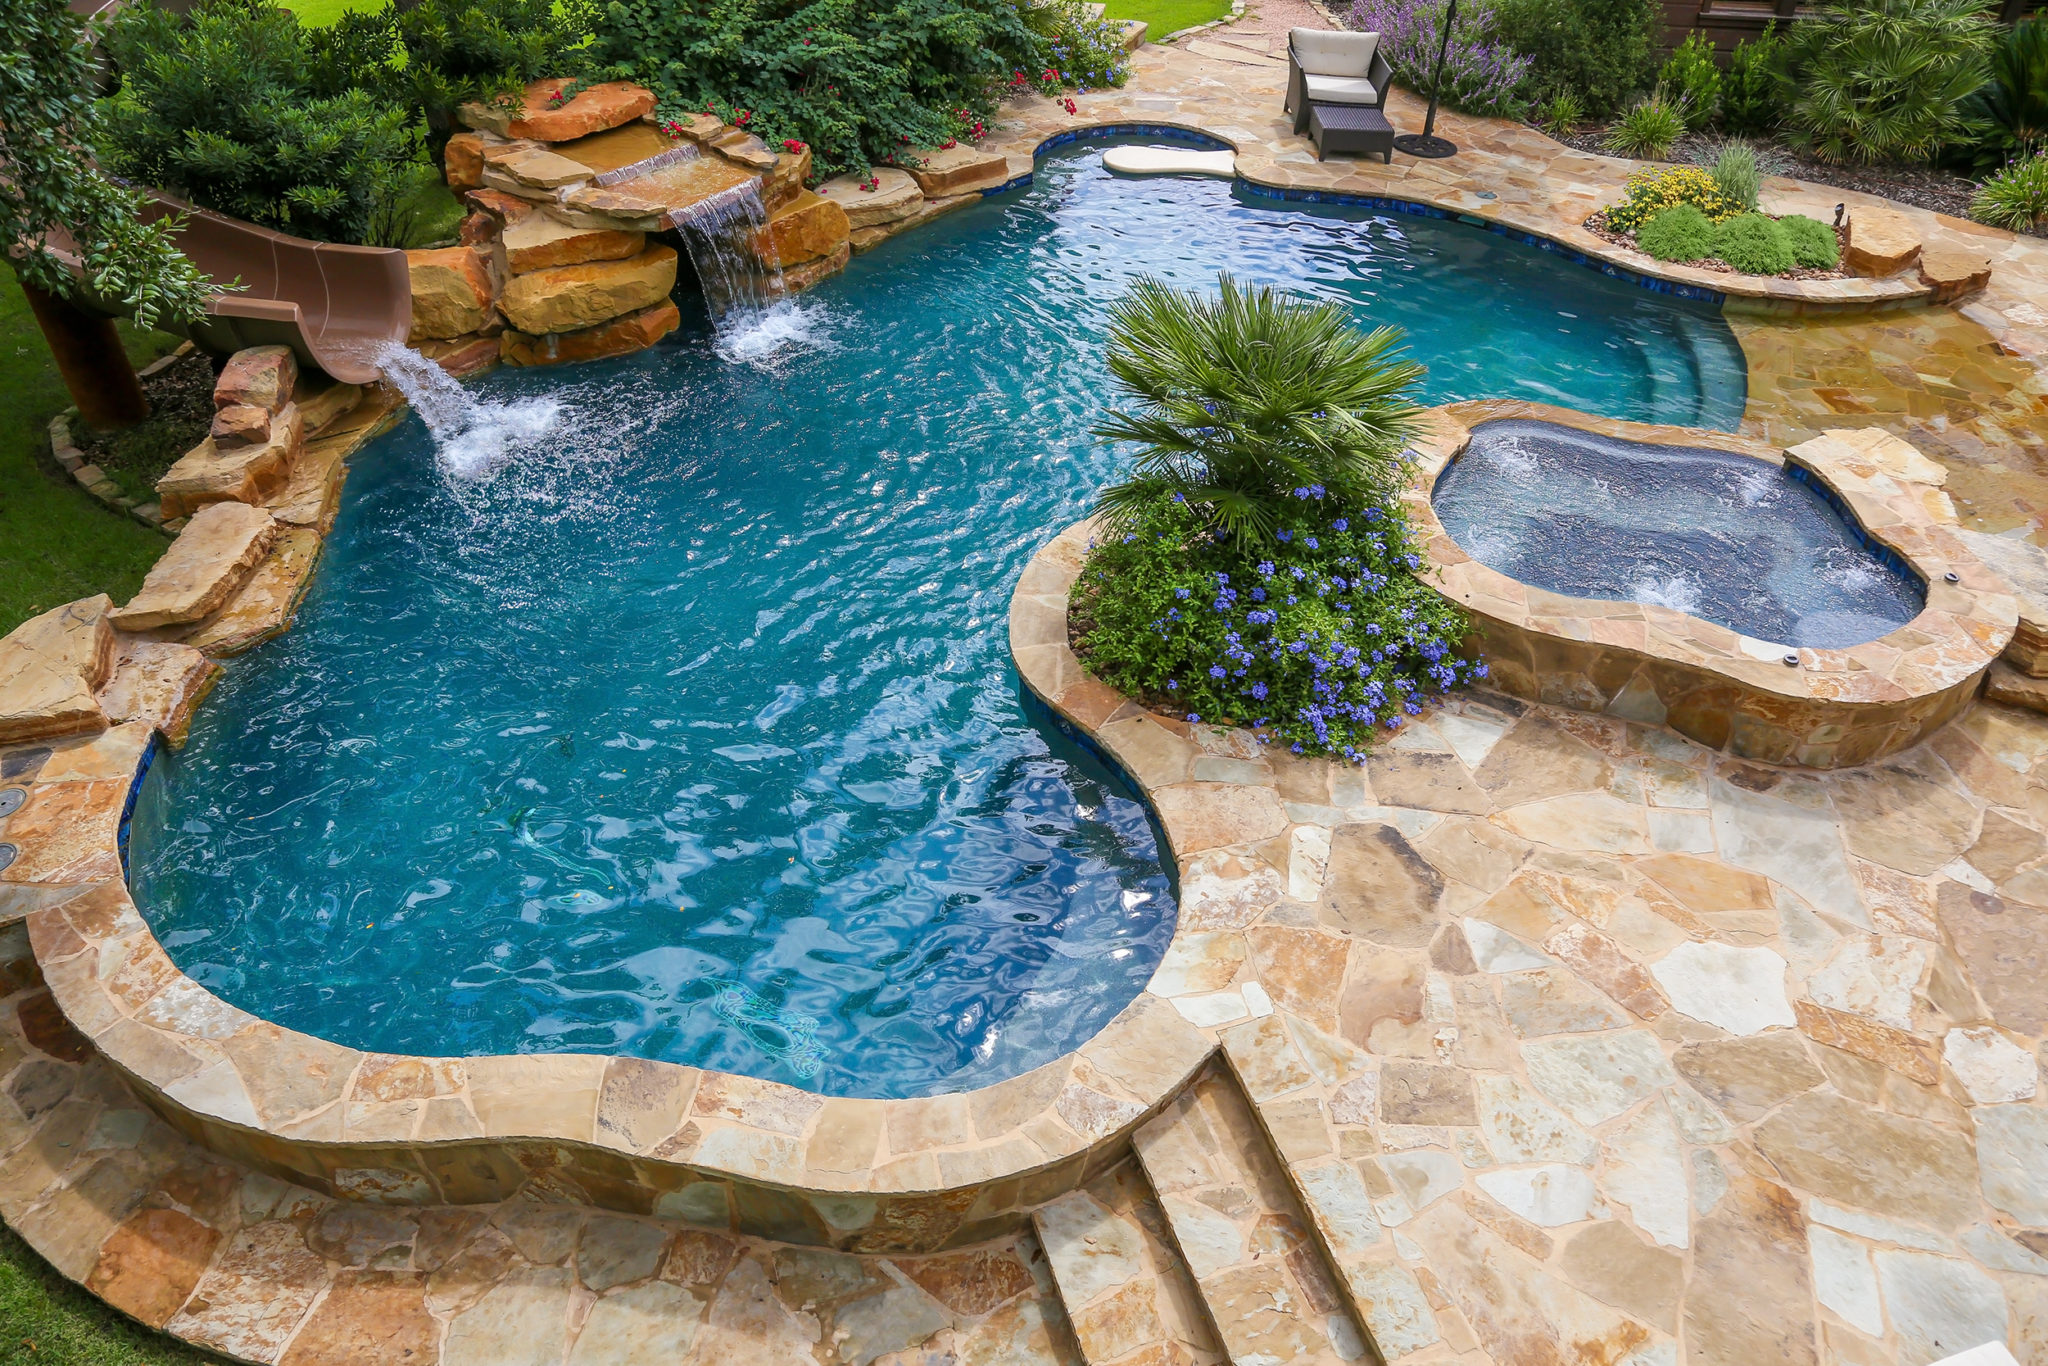 The Best Automatic Pool Cleaner For Your Pool Premier Pools Spas Pool Builders And Contractors